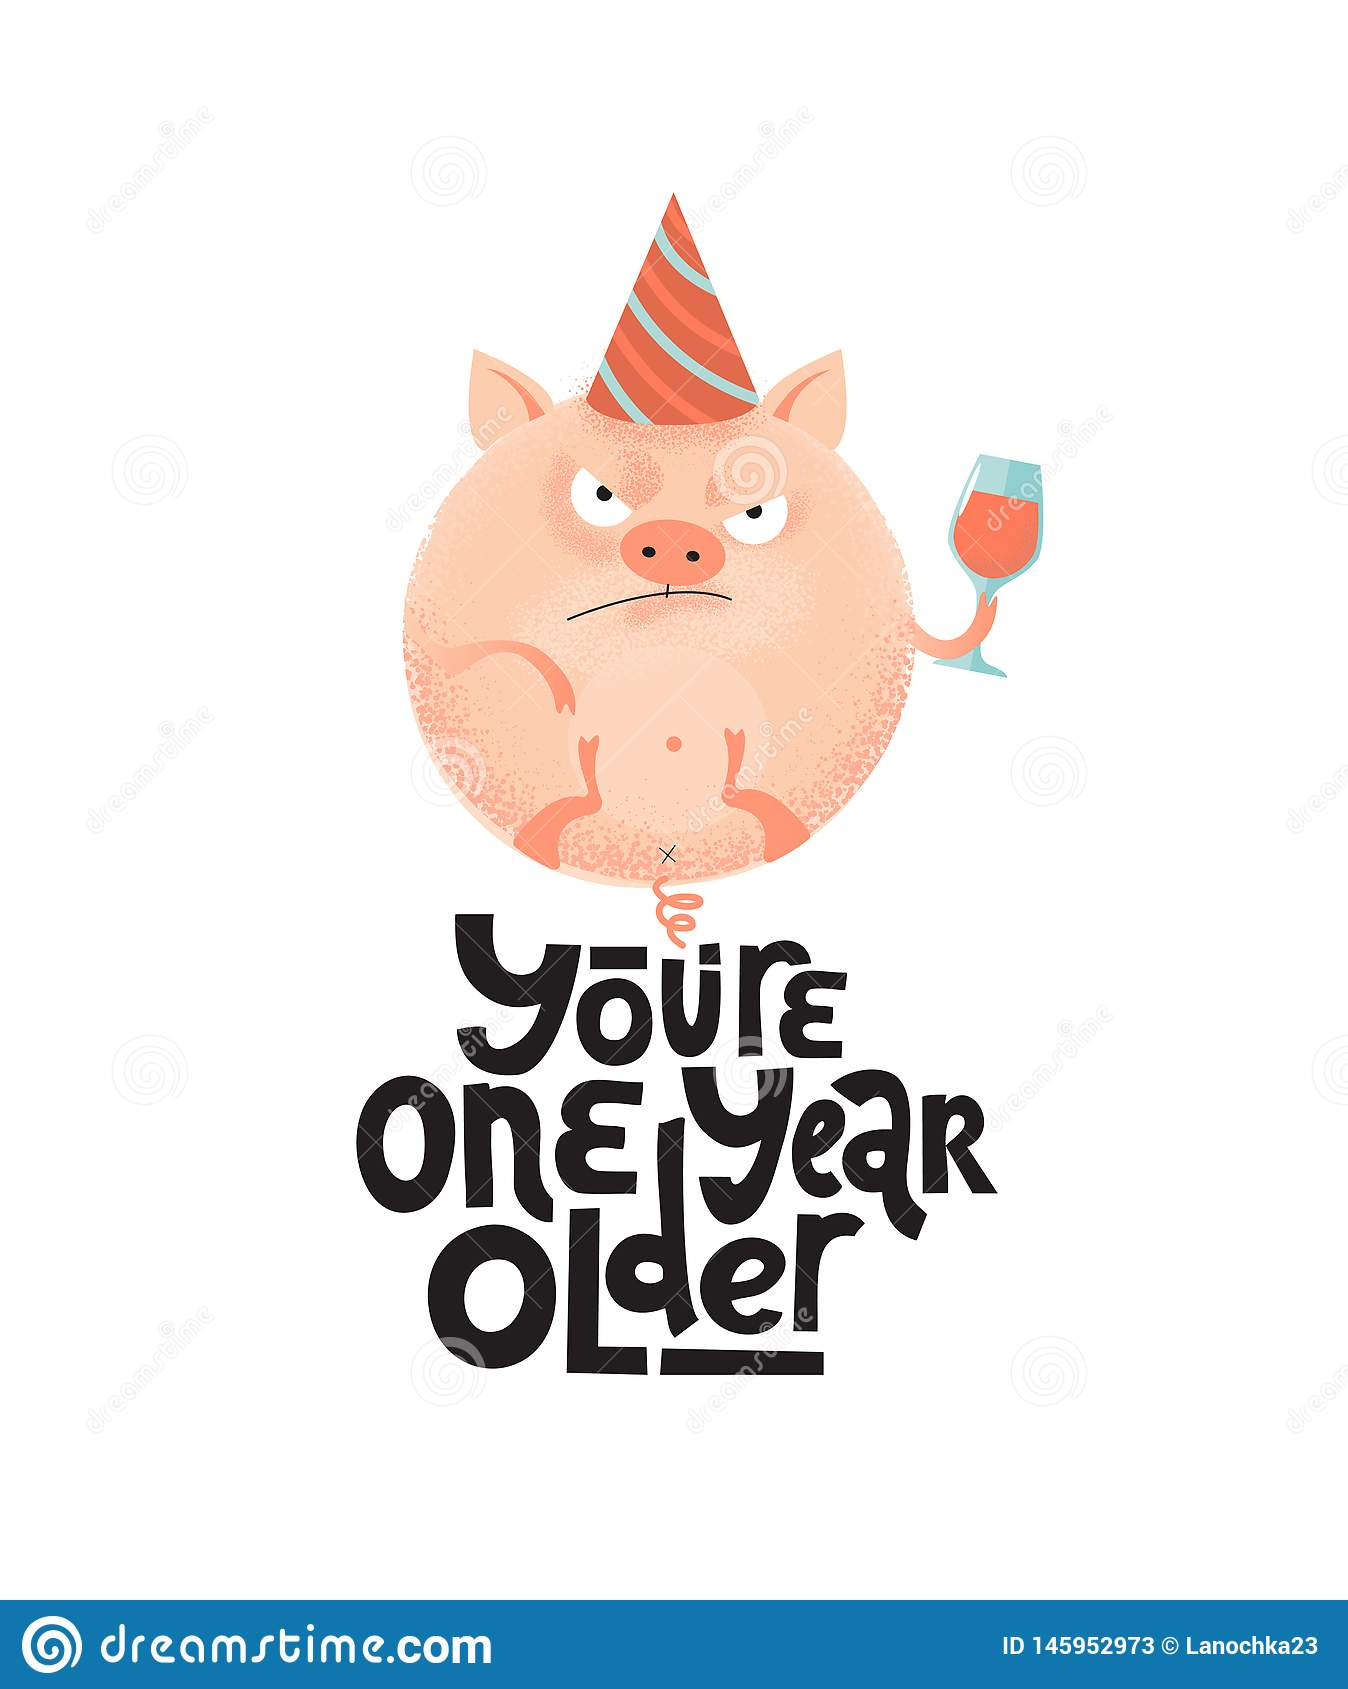 You`re one year older- funny, comical, black humor quote with angry round pig with wineglass,holiday cap. Flat textured